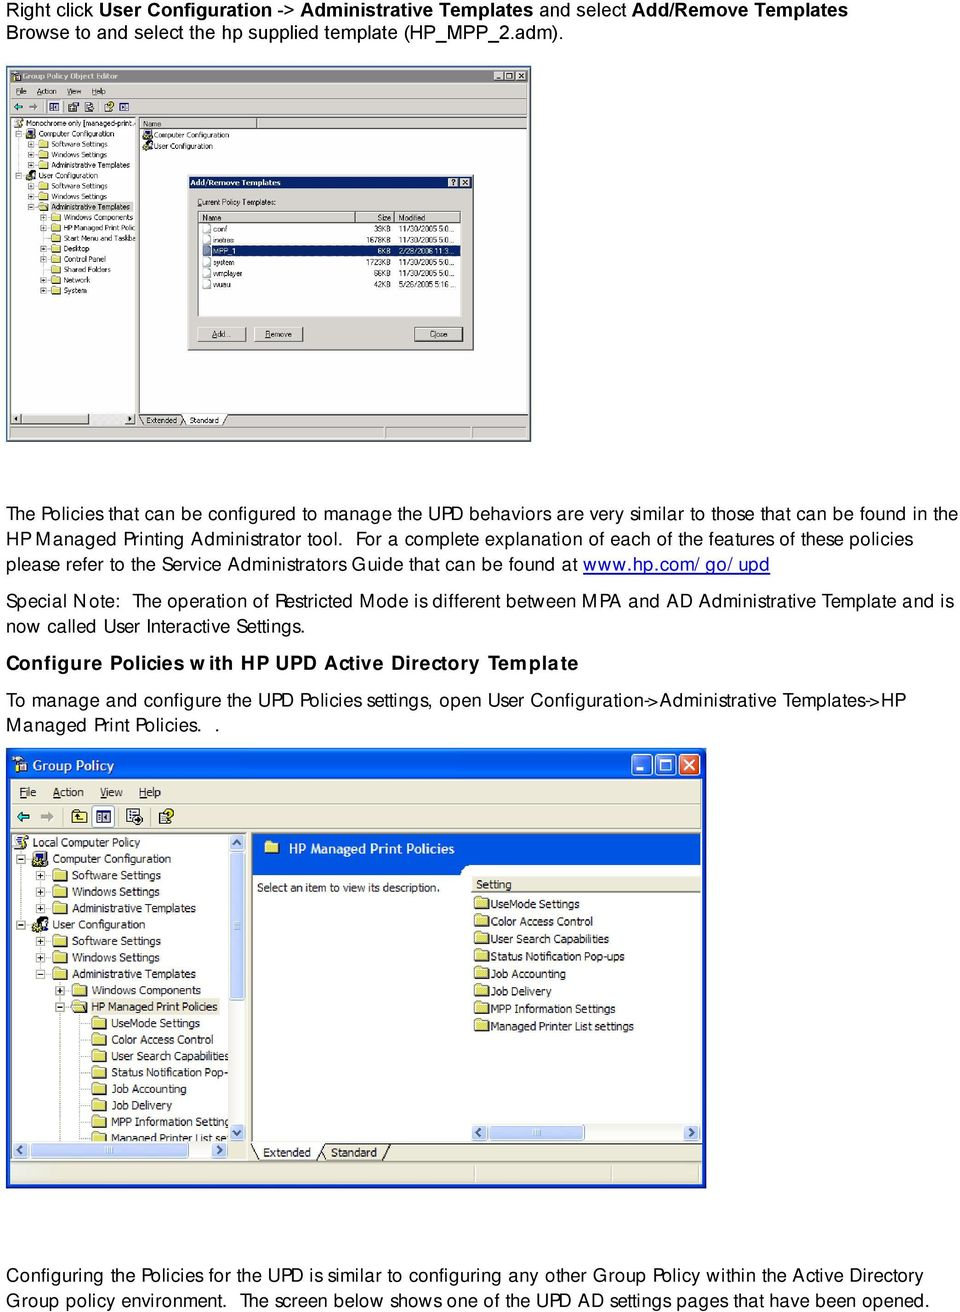 For a complete explanation of each of the features of these policies please refer to the Service Administrators Guide that can be found at www.hp.